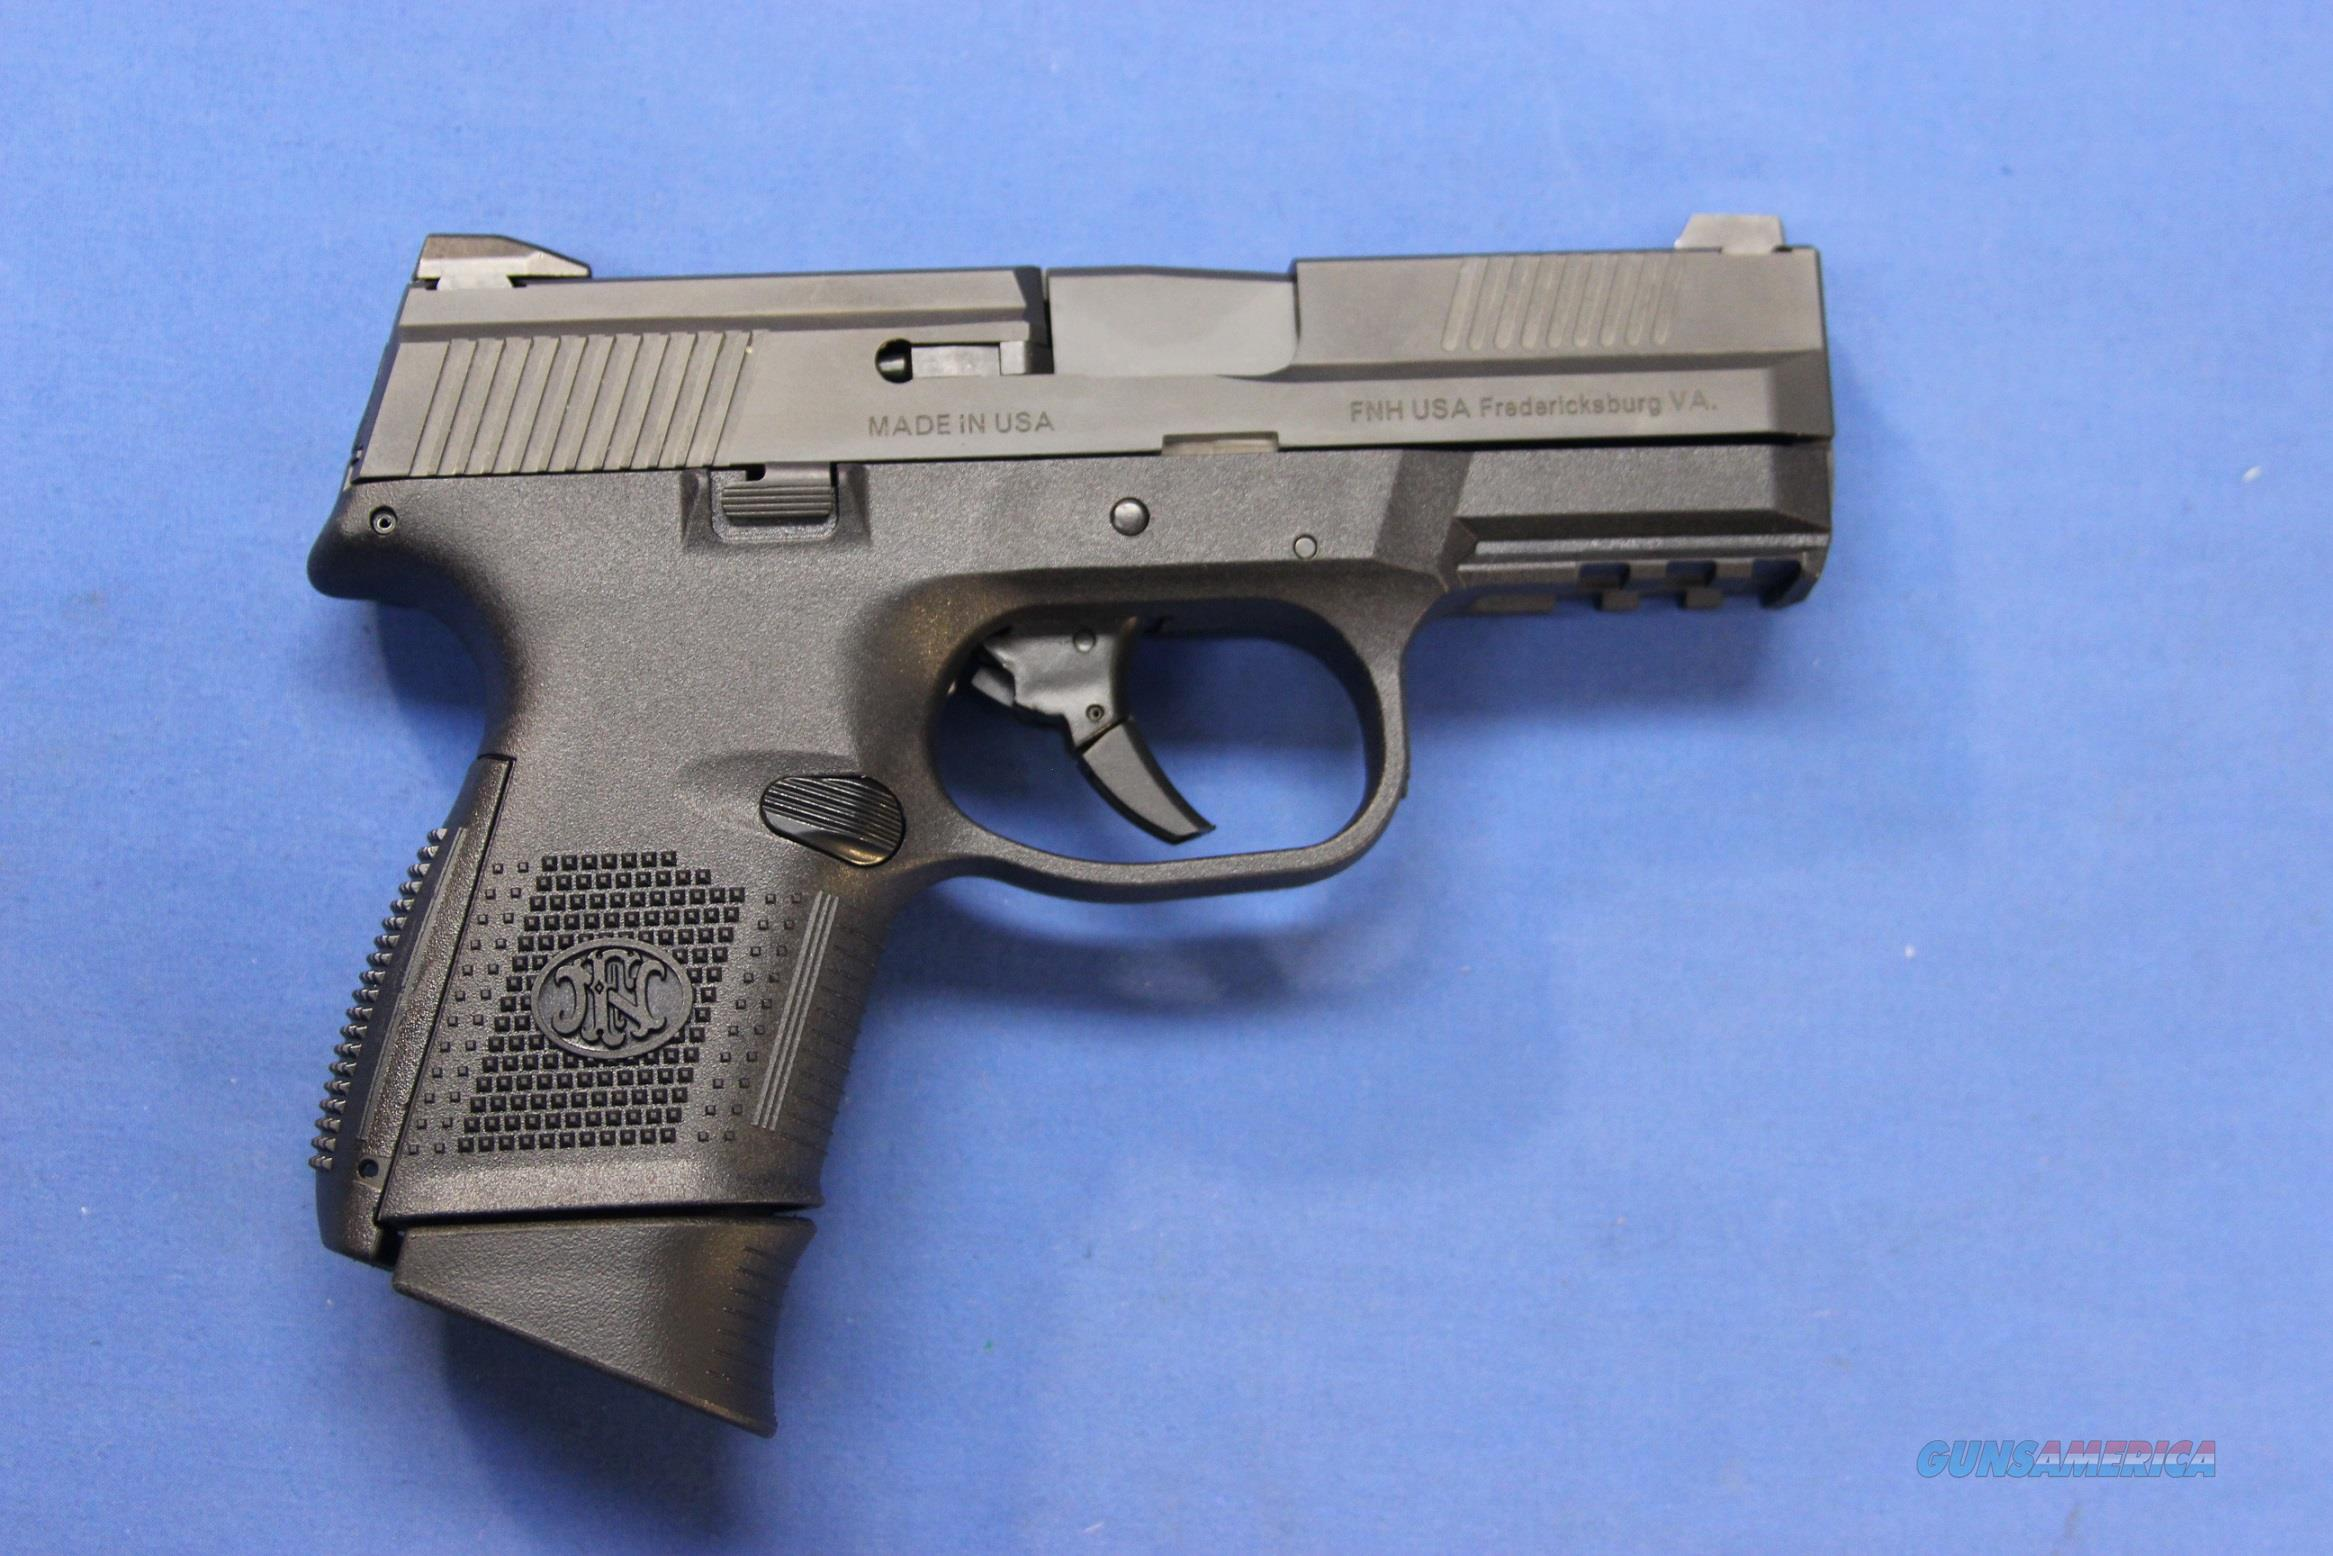 FNH USA FNS-9c 9mm - NEW IN BOX w/3 MAGS!  Guns > Pistols > FNH - Fabrique Nationale (FN) Pistols > FNS